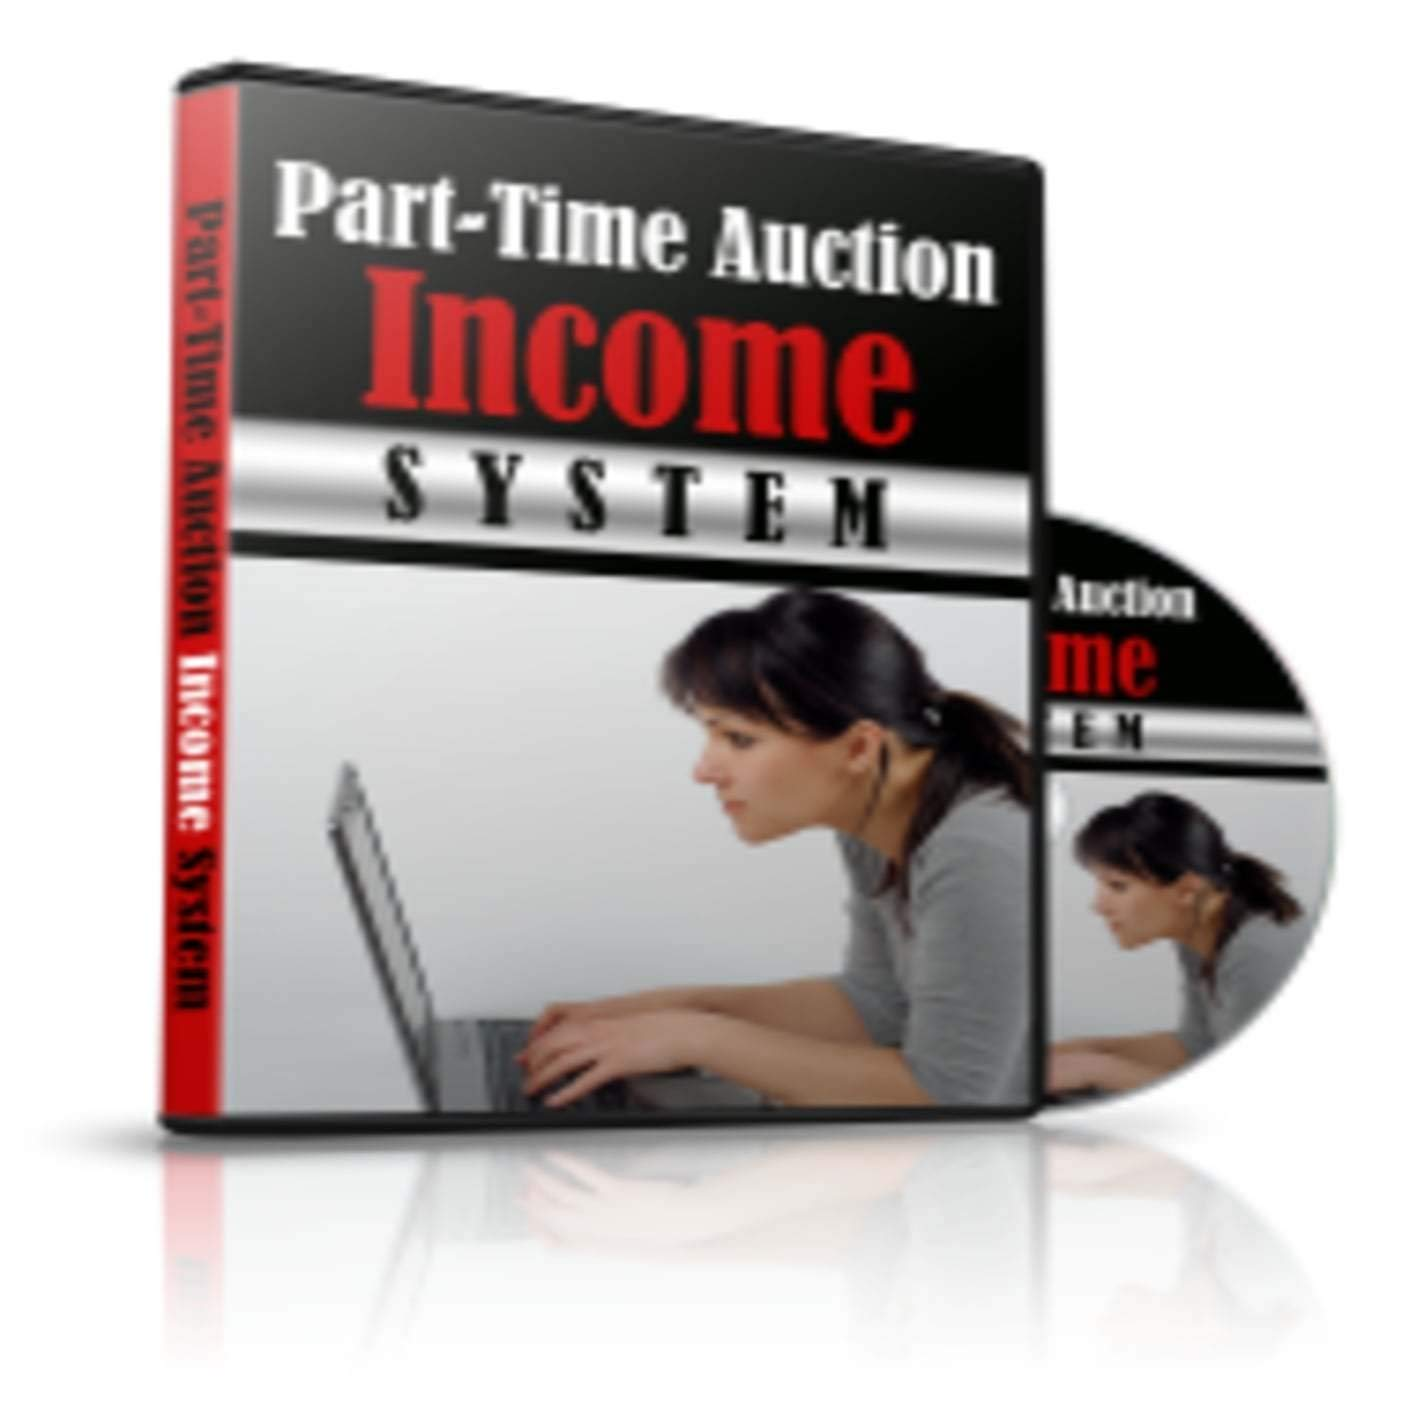 Amazon Com Part Time Auction Income System Video Pack Training Course Get Digital World Get Digital World Get Digital World Get Digital World Movies Tv